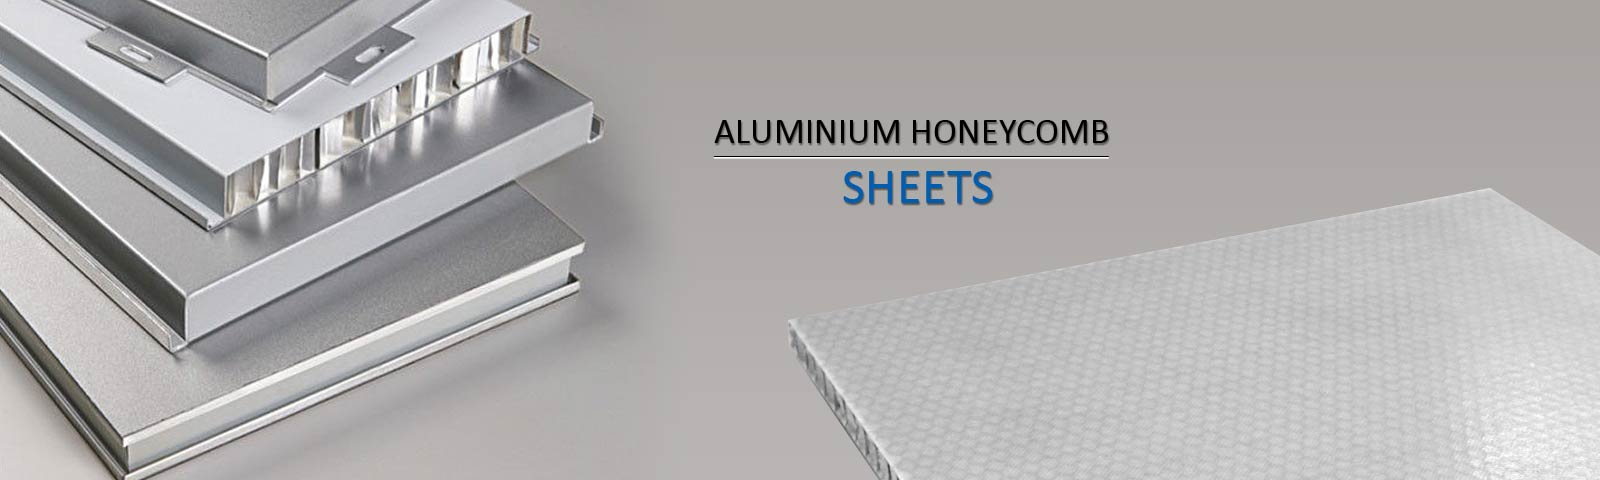 Aluminium Honeycom Sheets Manufacturer and Supplier in Phek